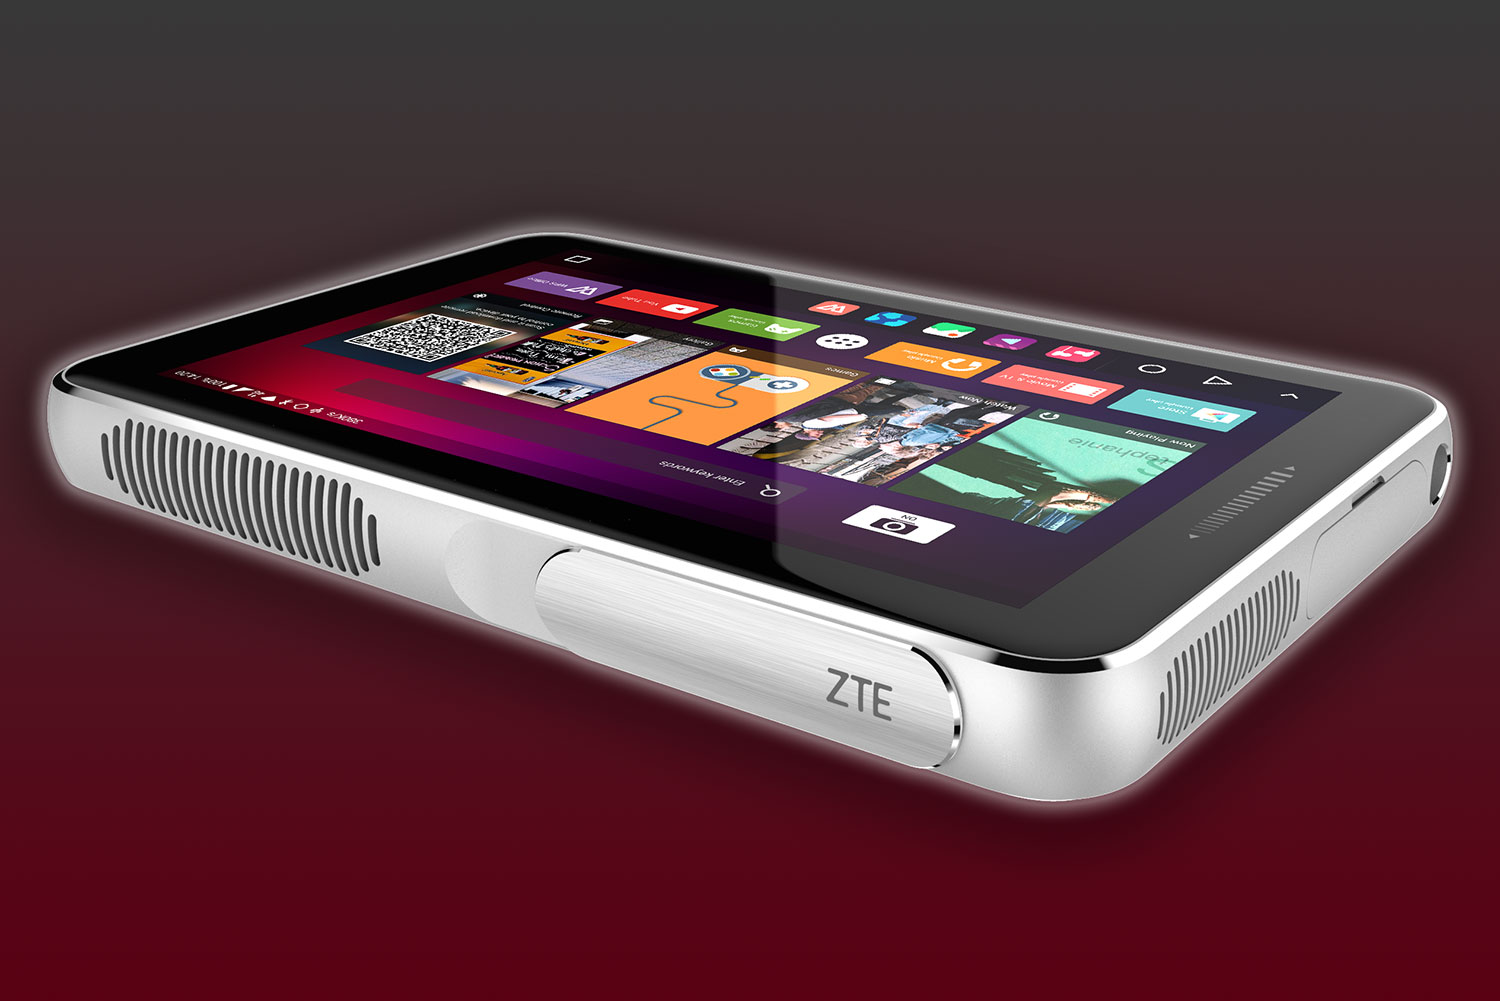 You are zte spro 2 plus can also